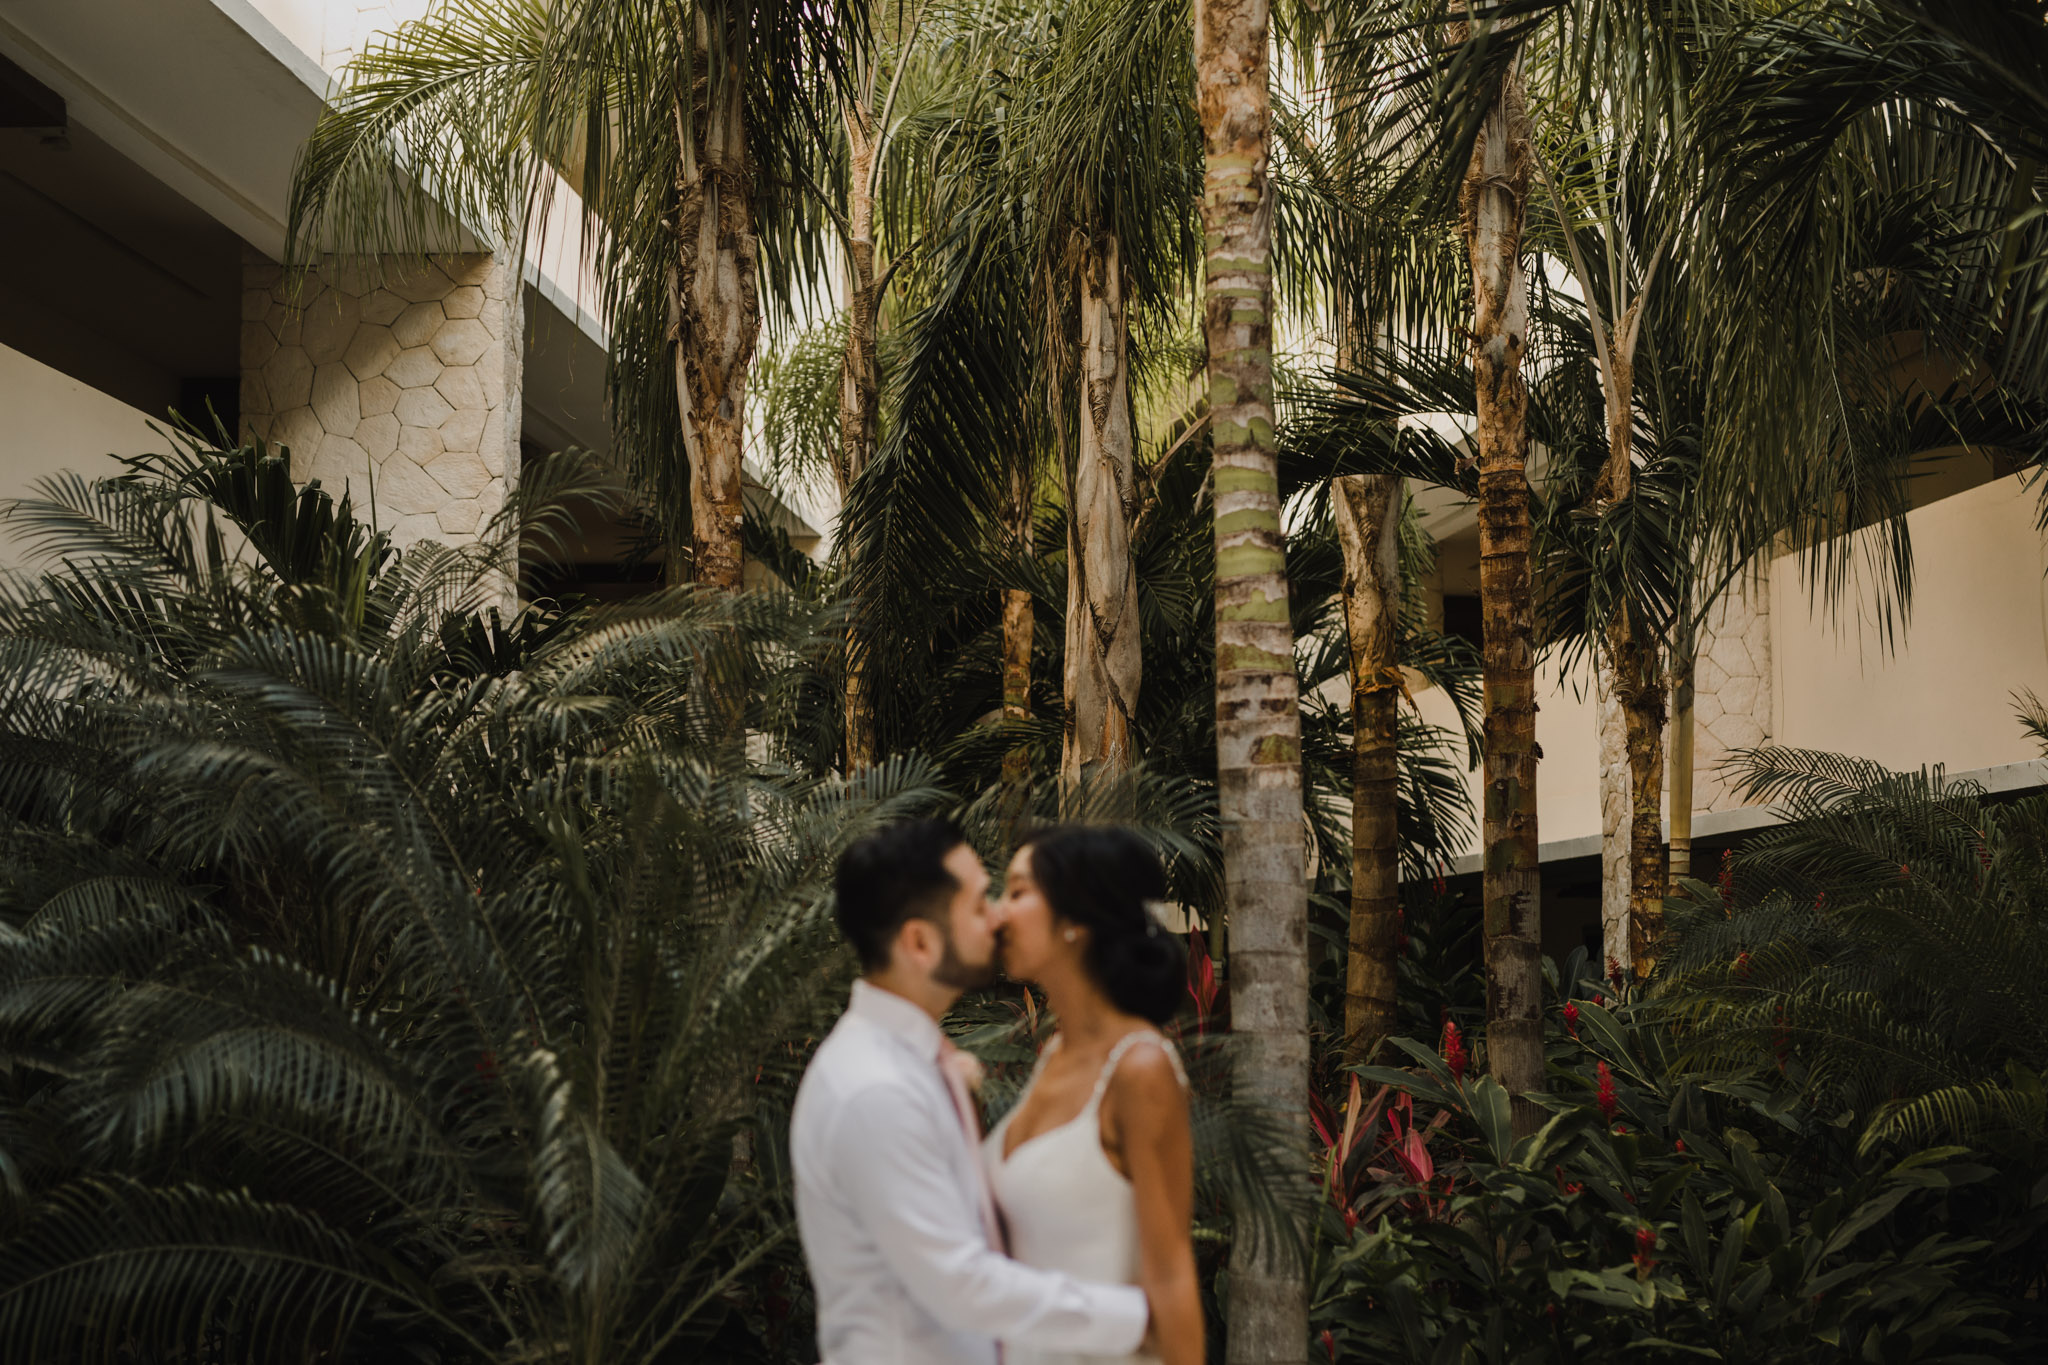 Cancun Mexico Wedding - bride and groom kiss under palm trees